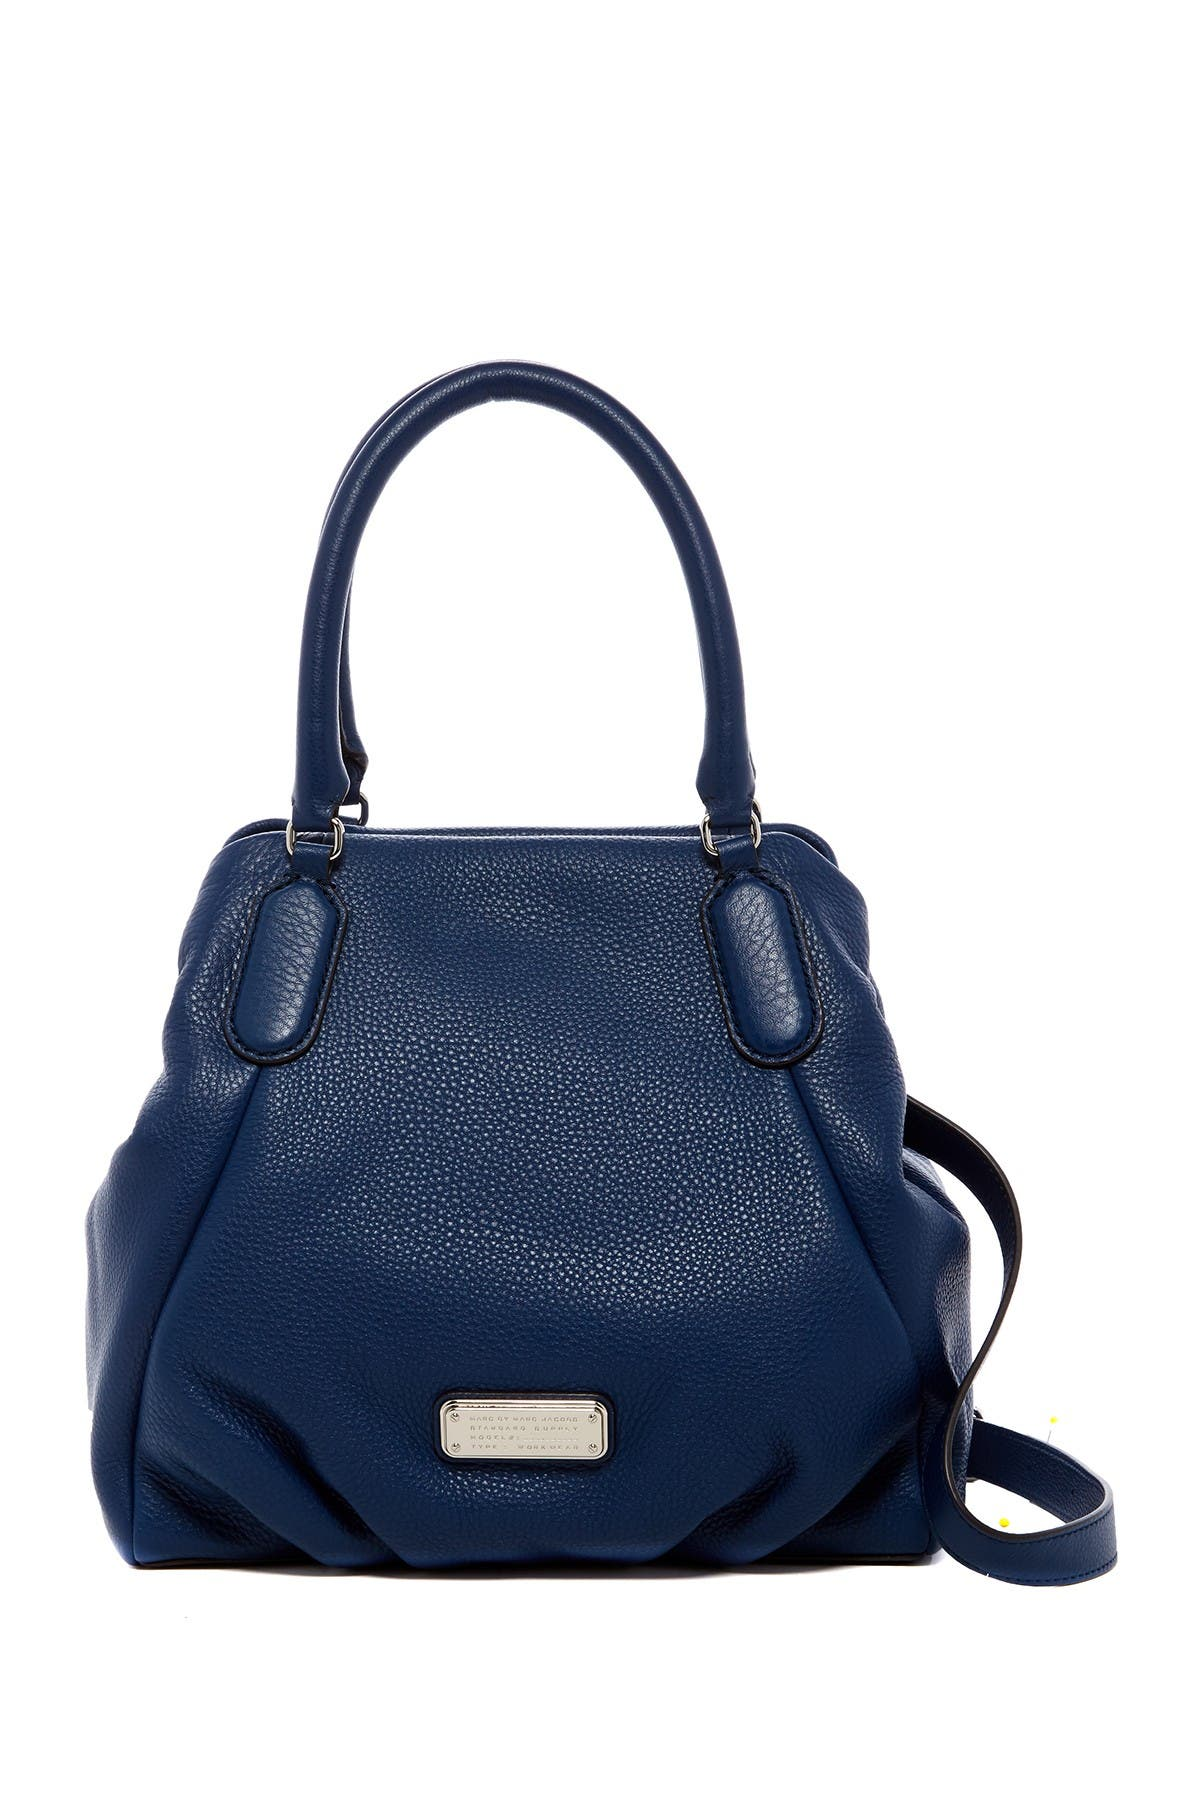 Image of Marc by Marc Jacobs Fran Leather Satchel